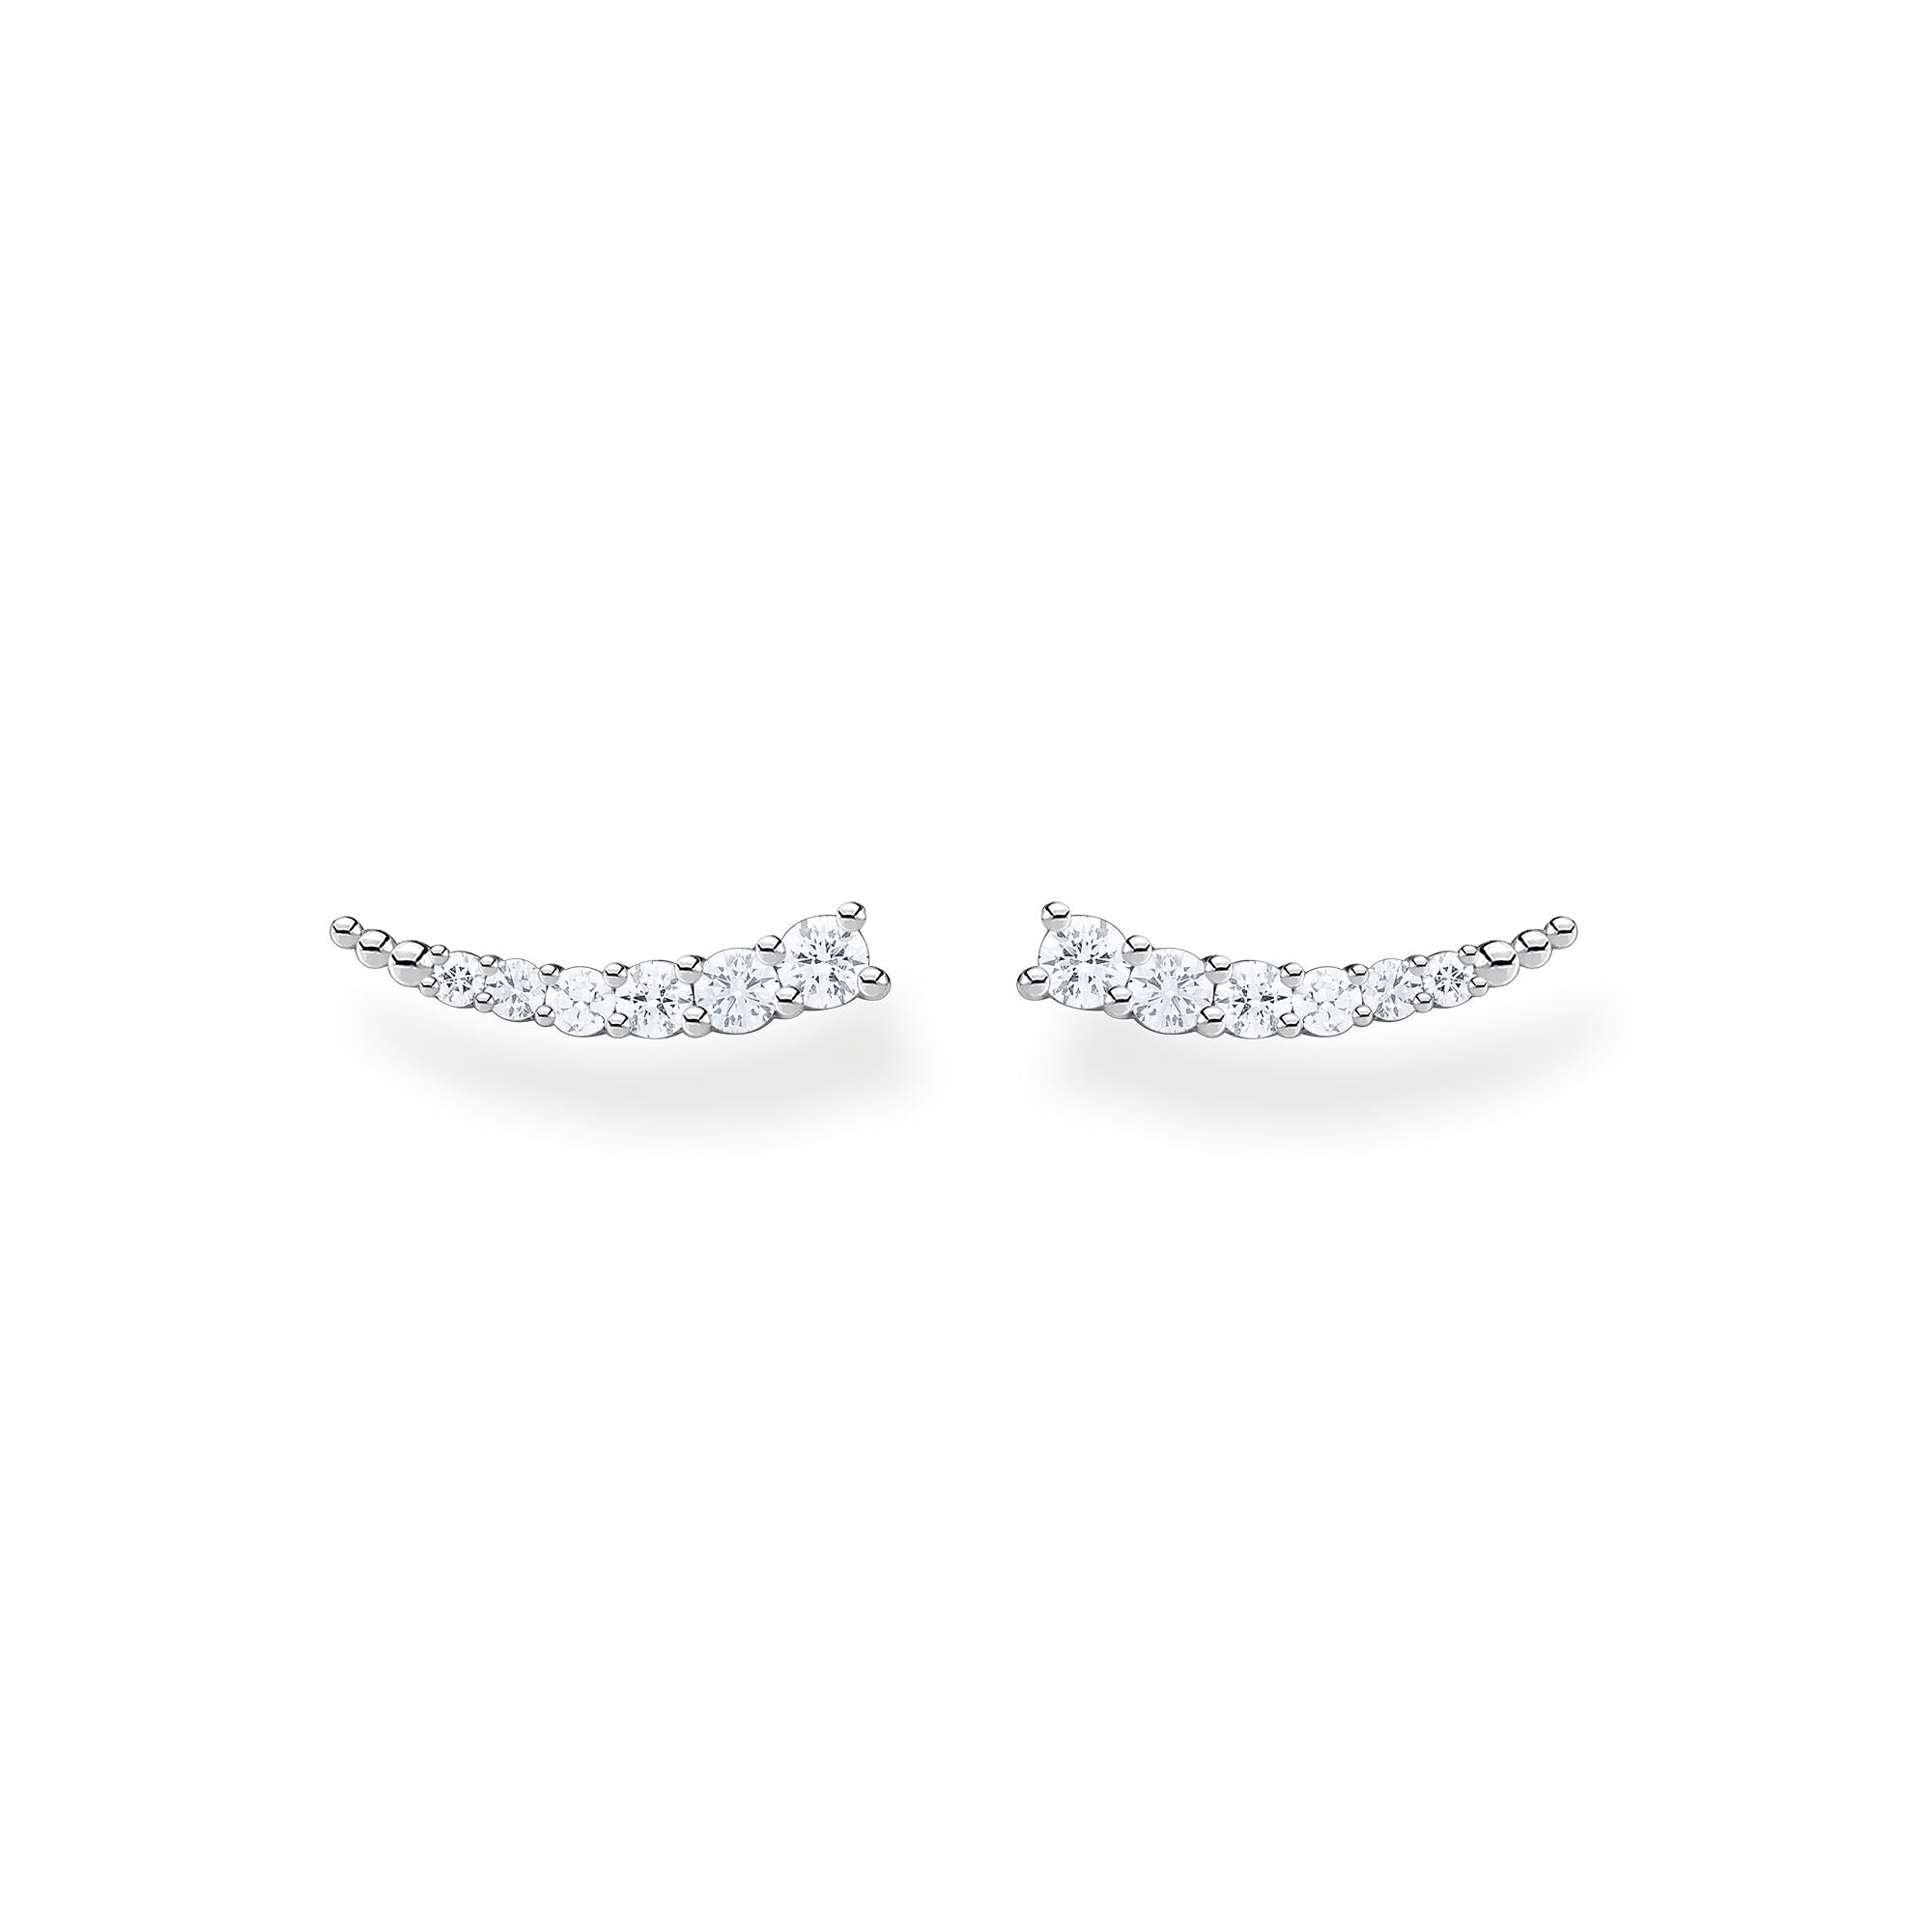 Thomas Sabo, Sterling Silver, Cubic Zirconia, Multi Stone, Curve, Earring Climbers, Ottawa